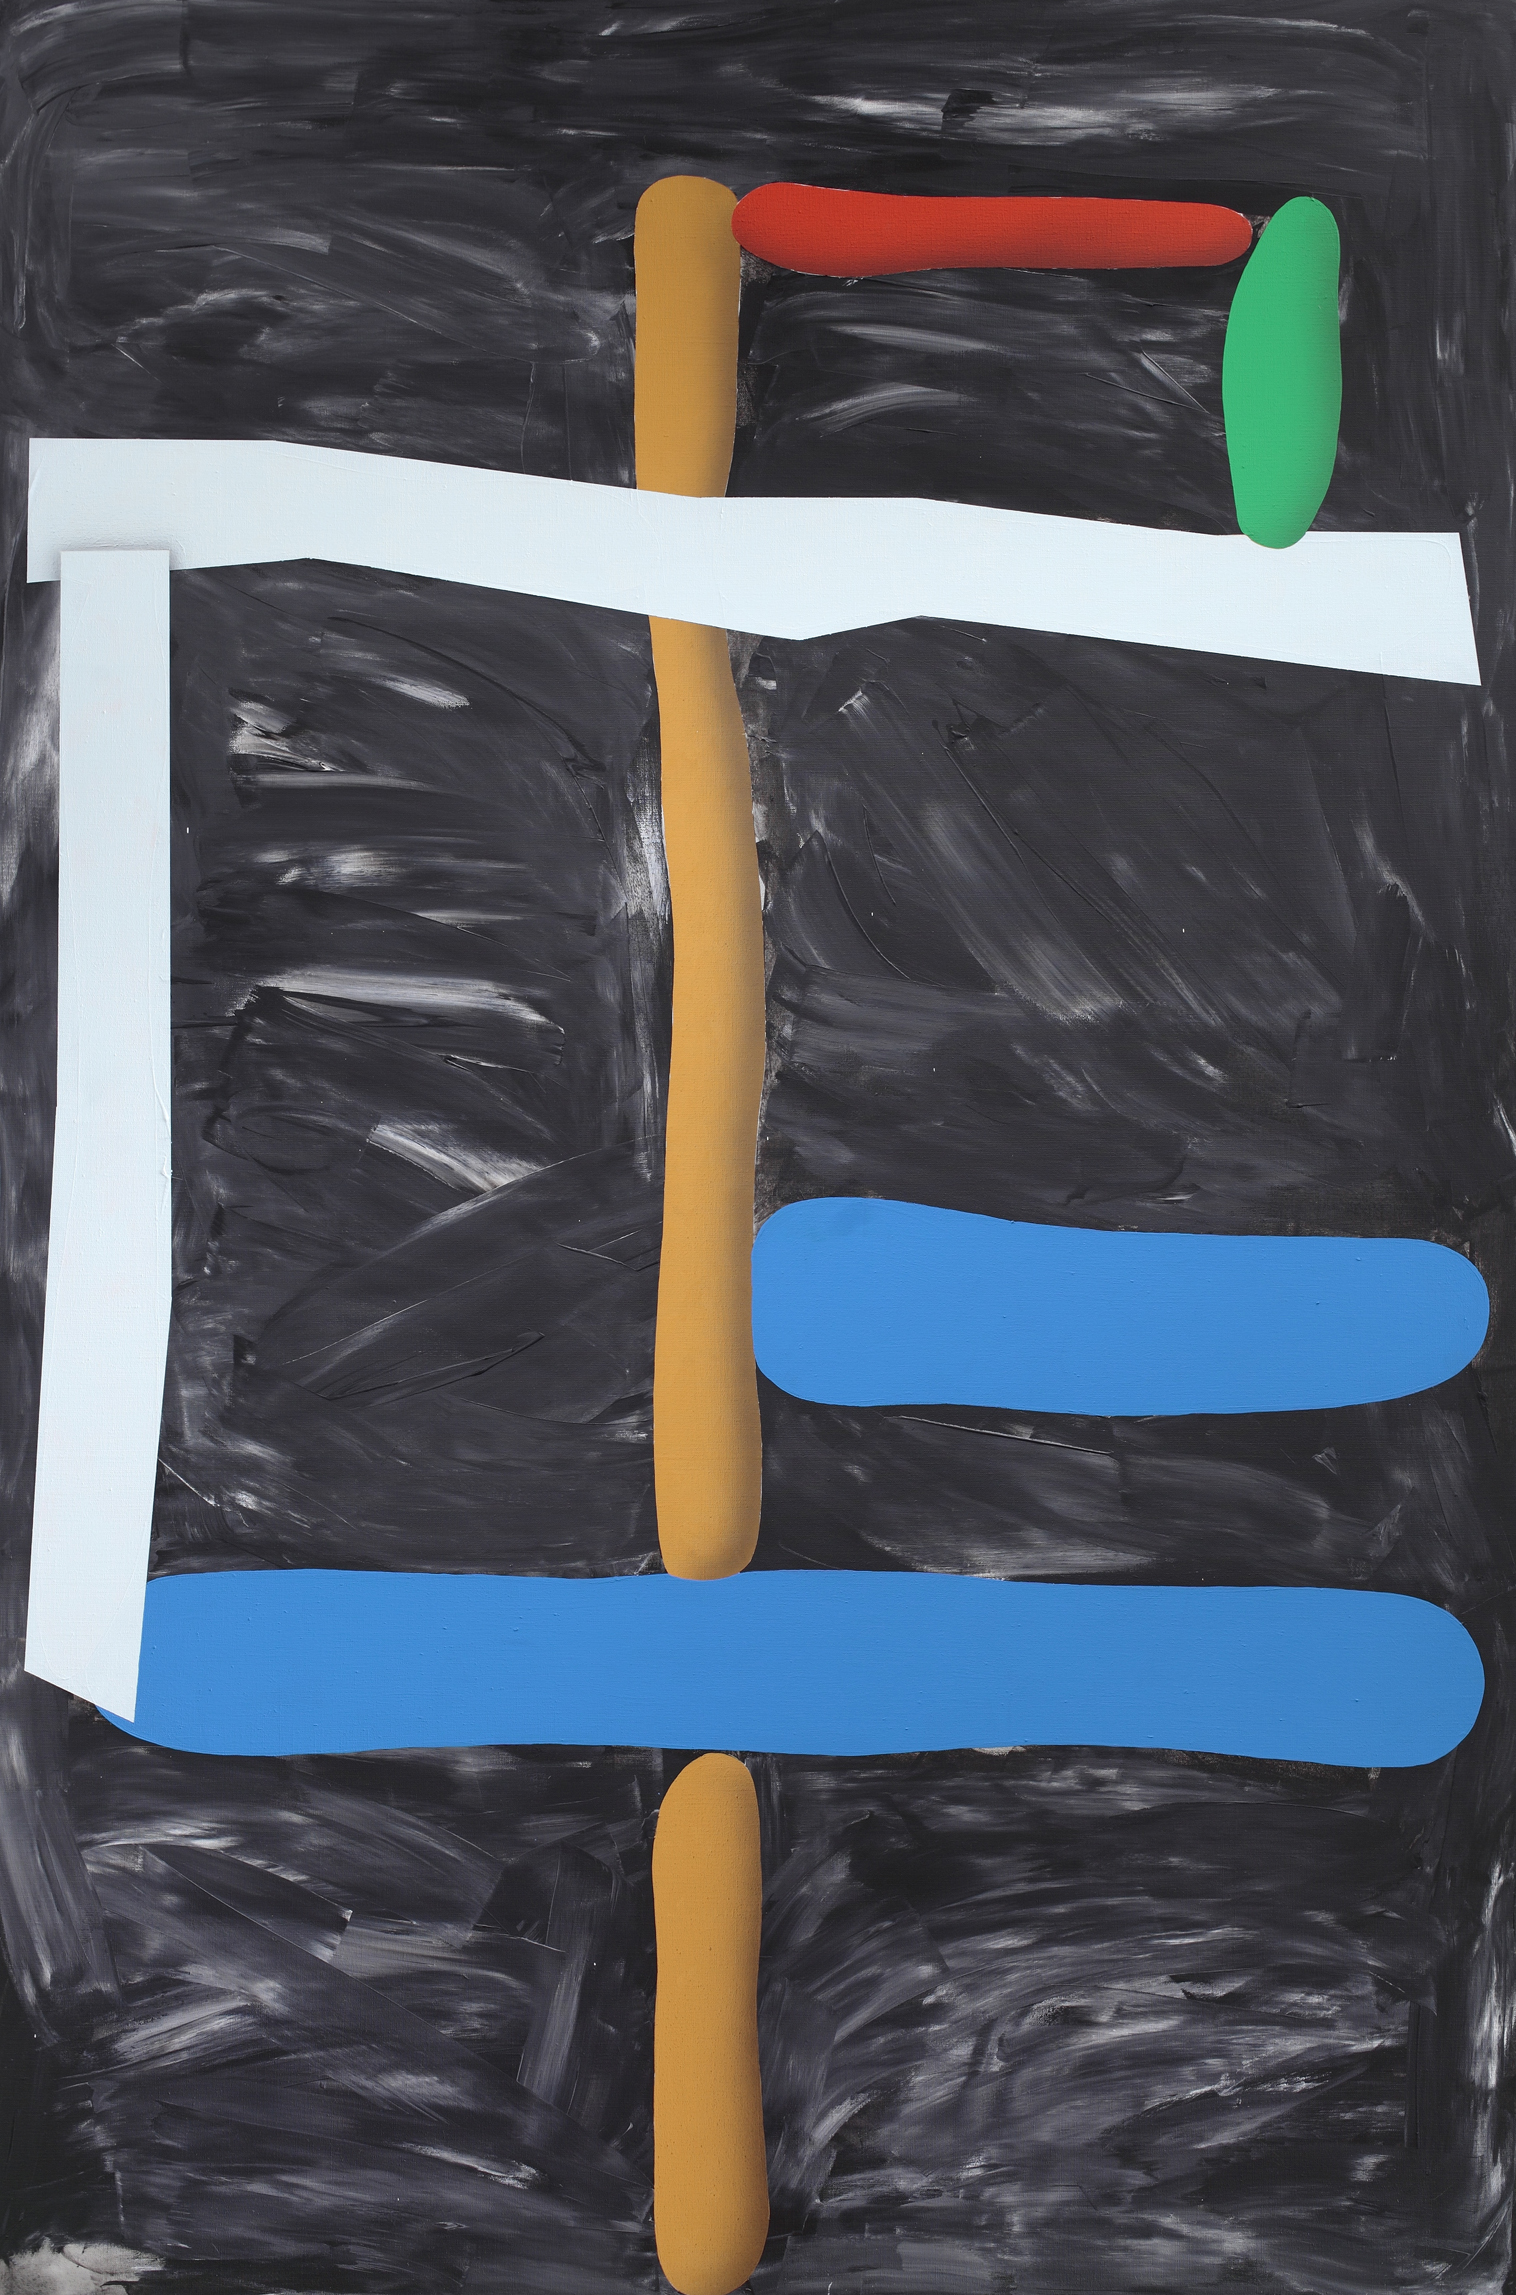 Composition No.2, 2011, acrylic on canvas, 180 x 120 cm